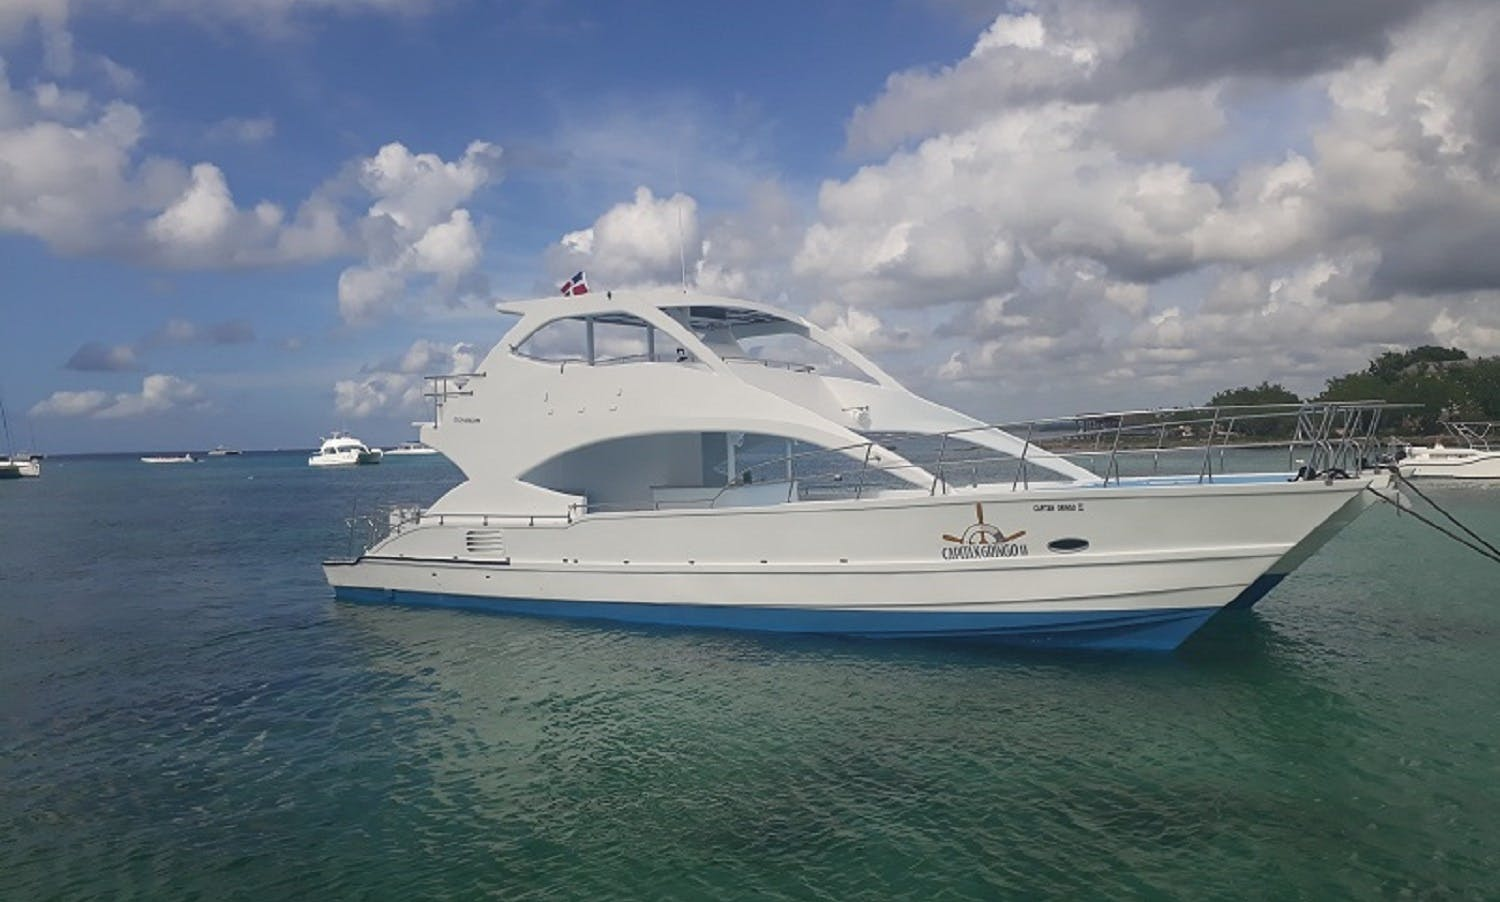 Motor Yacht rental in the Dominican Republic